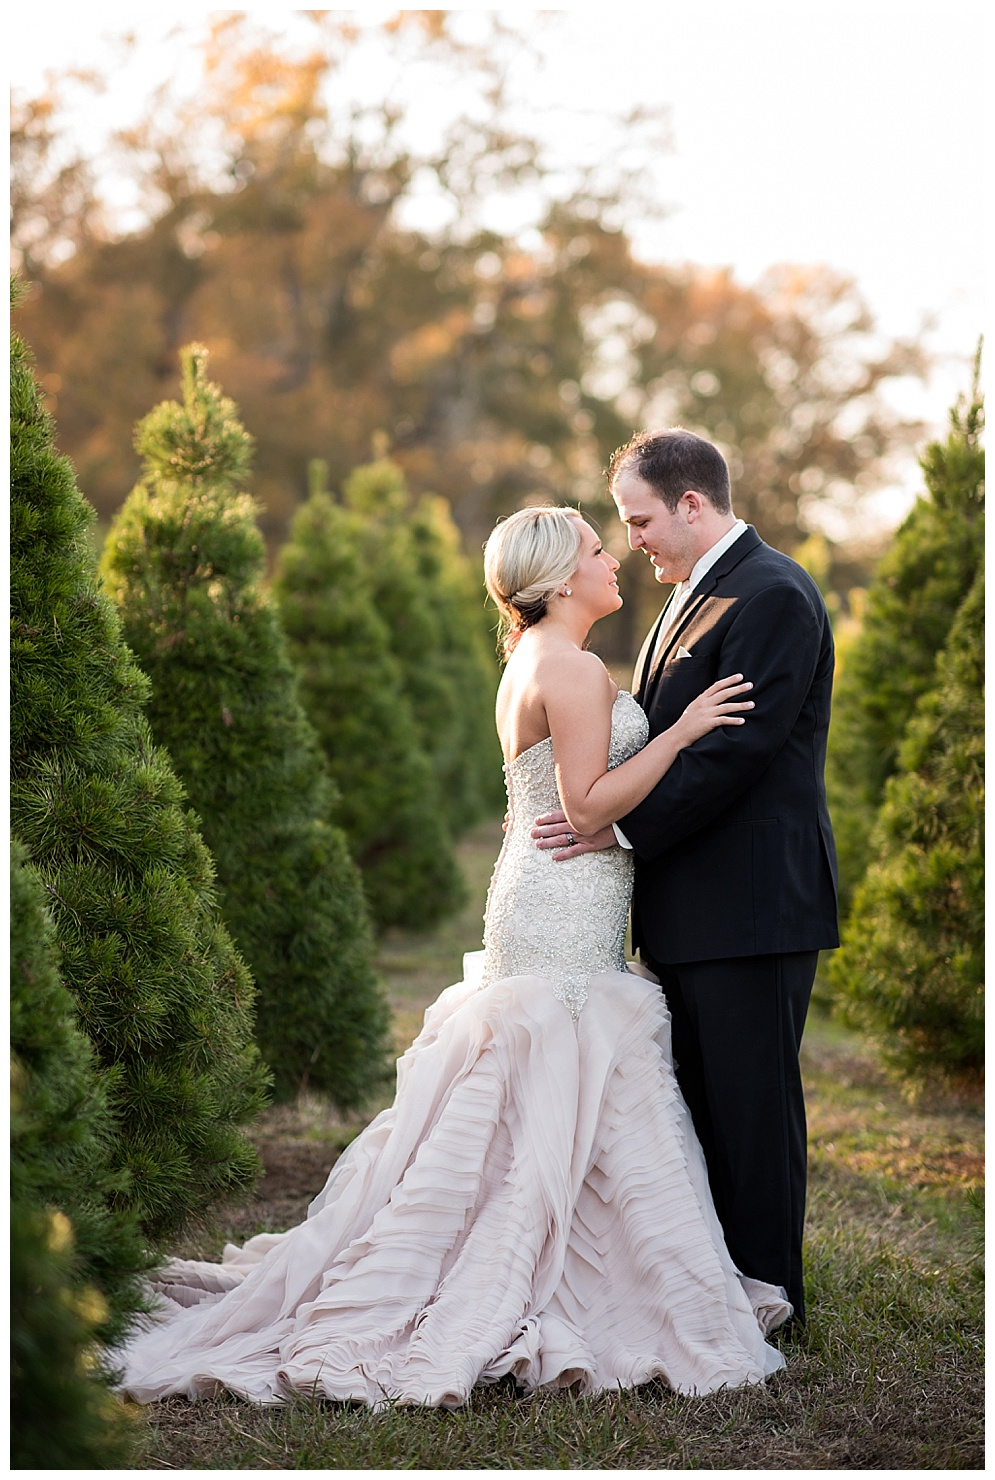 Emily_ChristmasTree_Farm_Arkansas_Wedding_Photographer_01.jpg